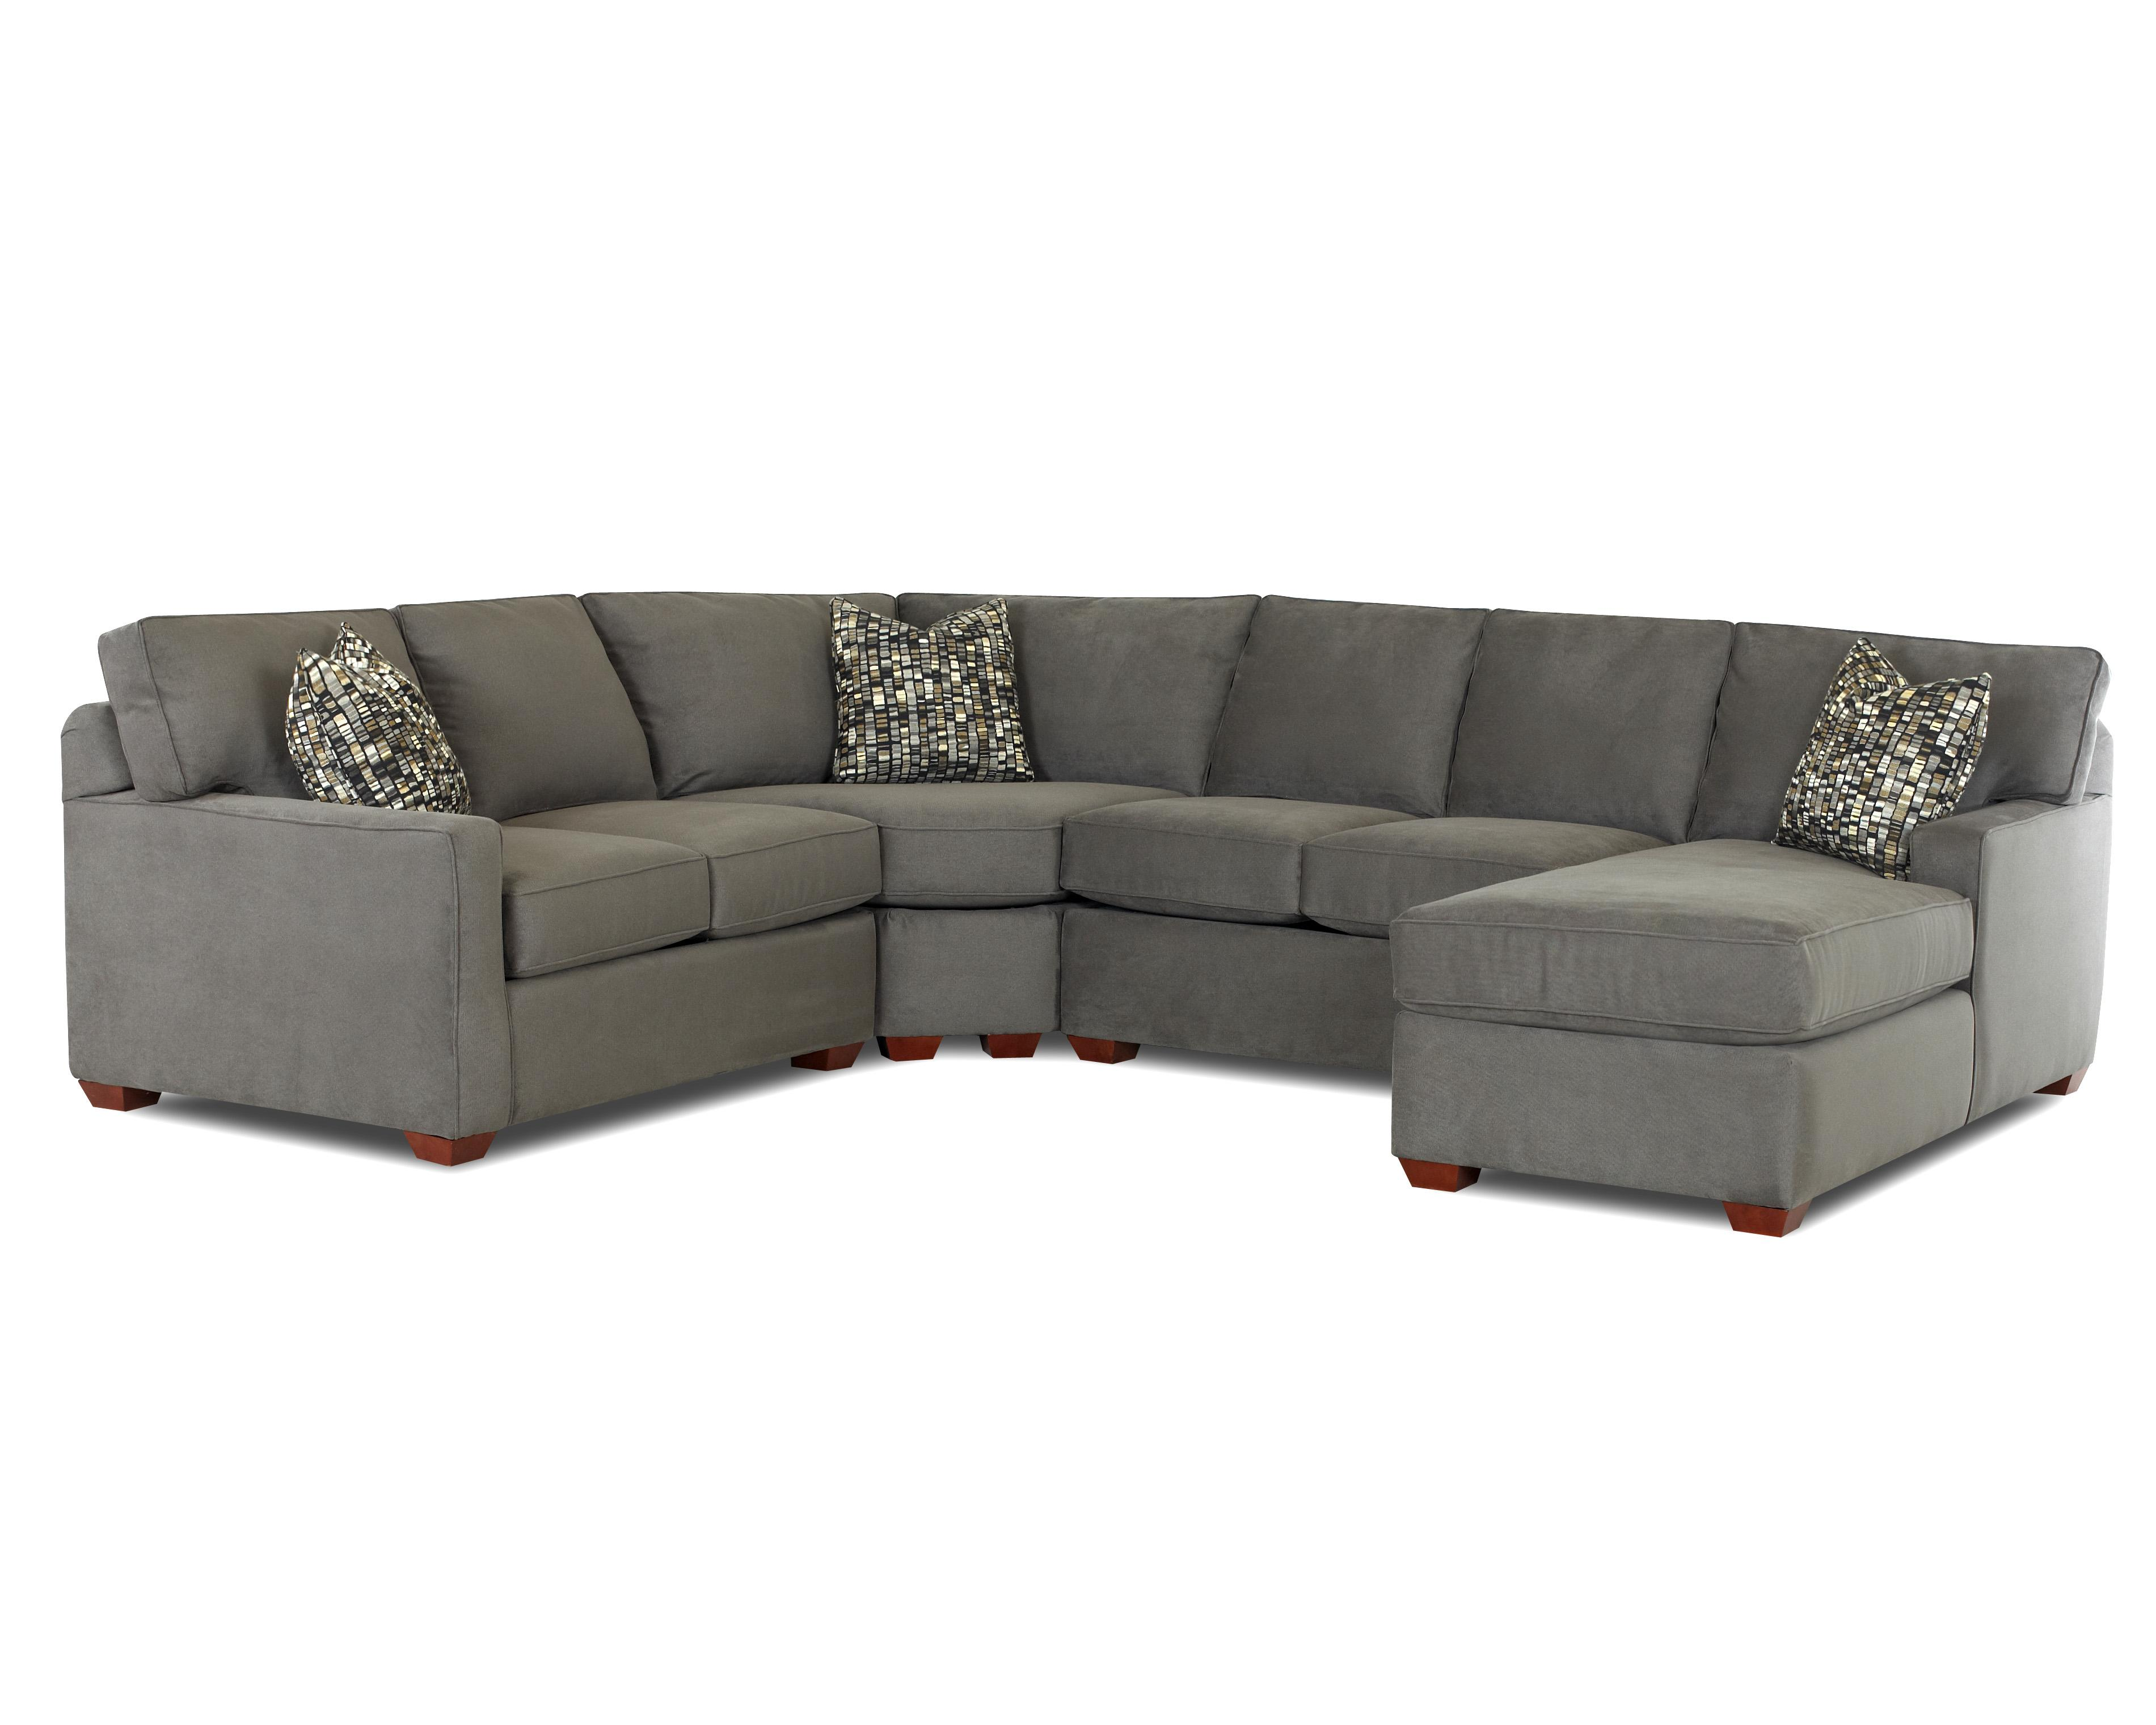 Contemporary L-Shaped Sectional Sofa with Right Arm Facing Chaise  sc 1 st  Wolf Furniture : right arm facing chaise - Sectionals, Sofas & Couches